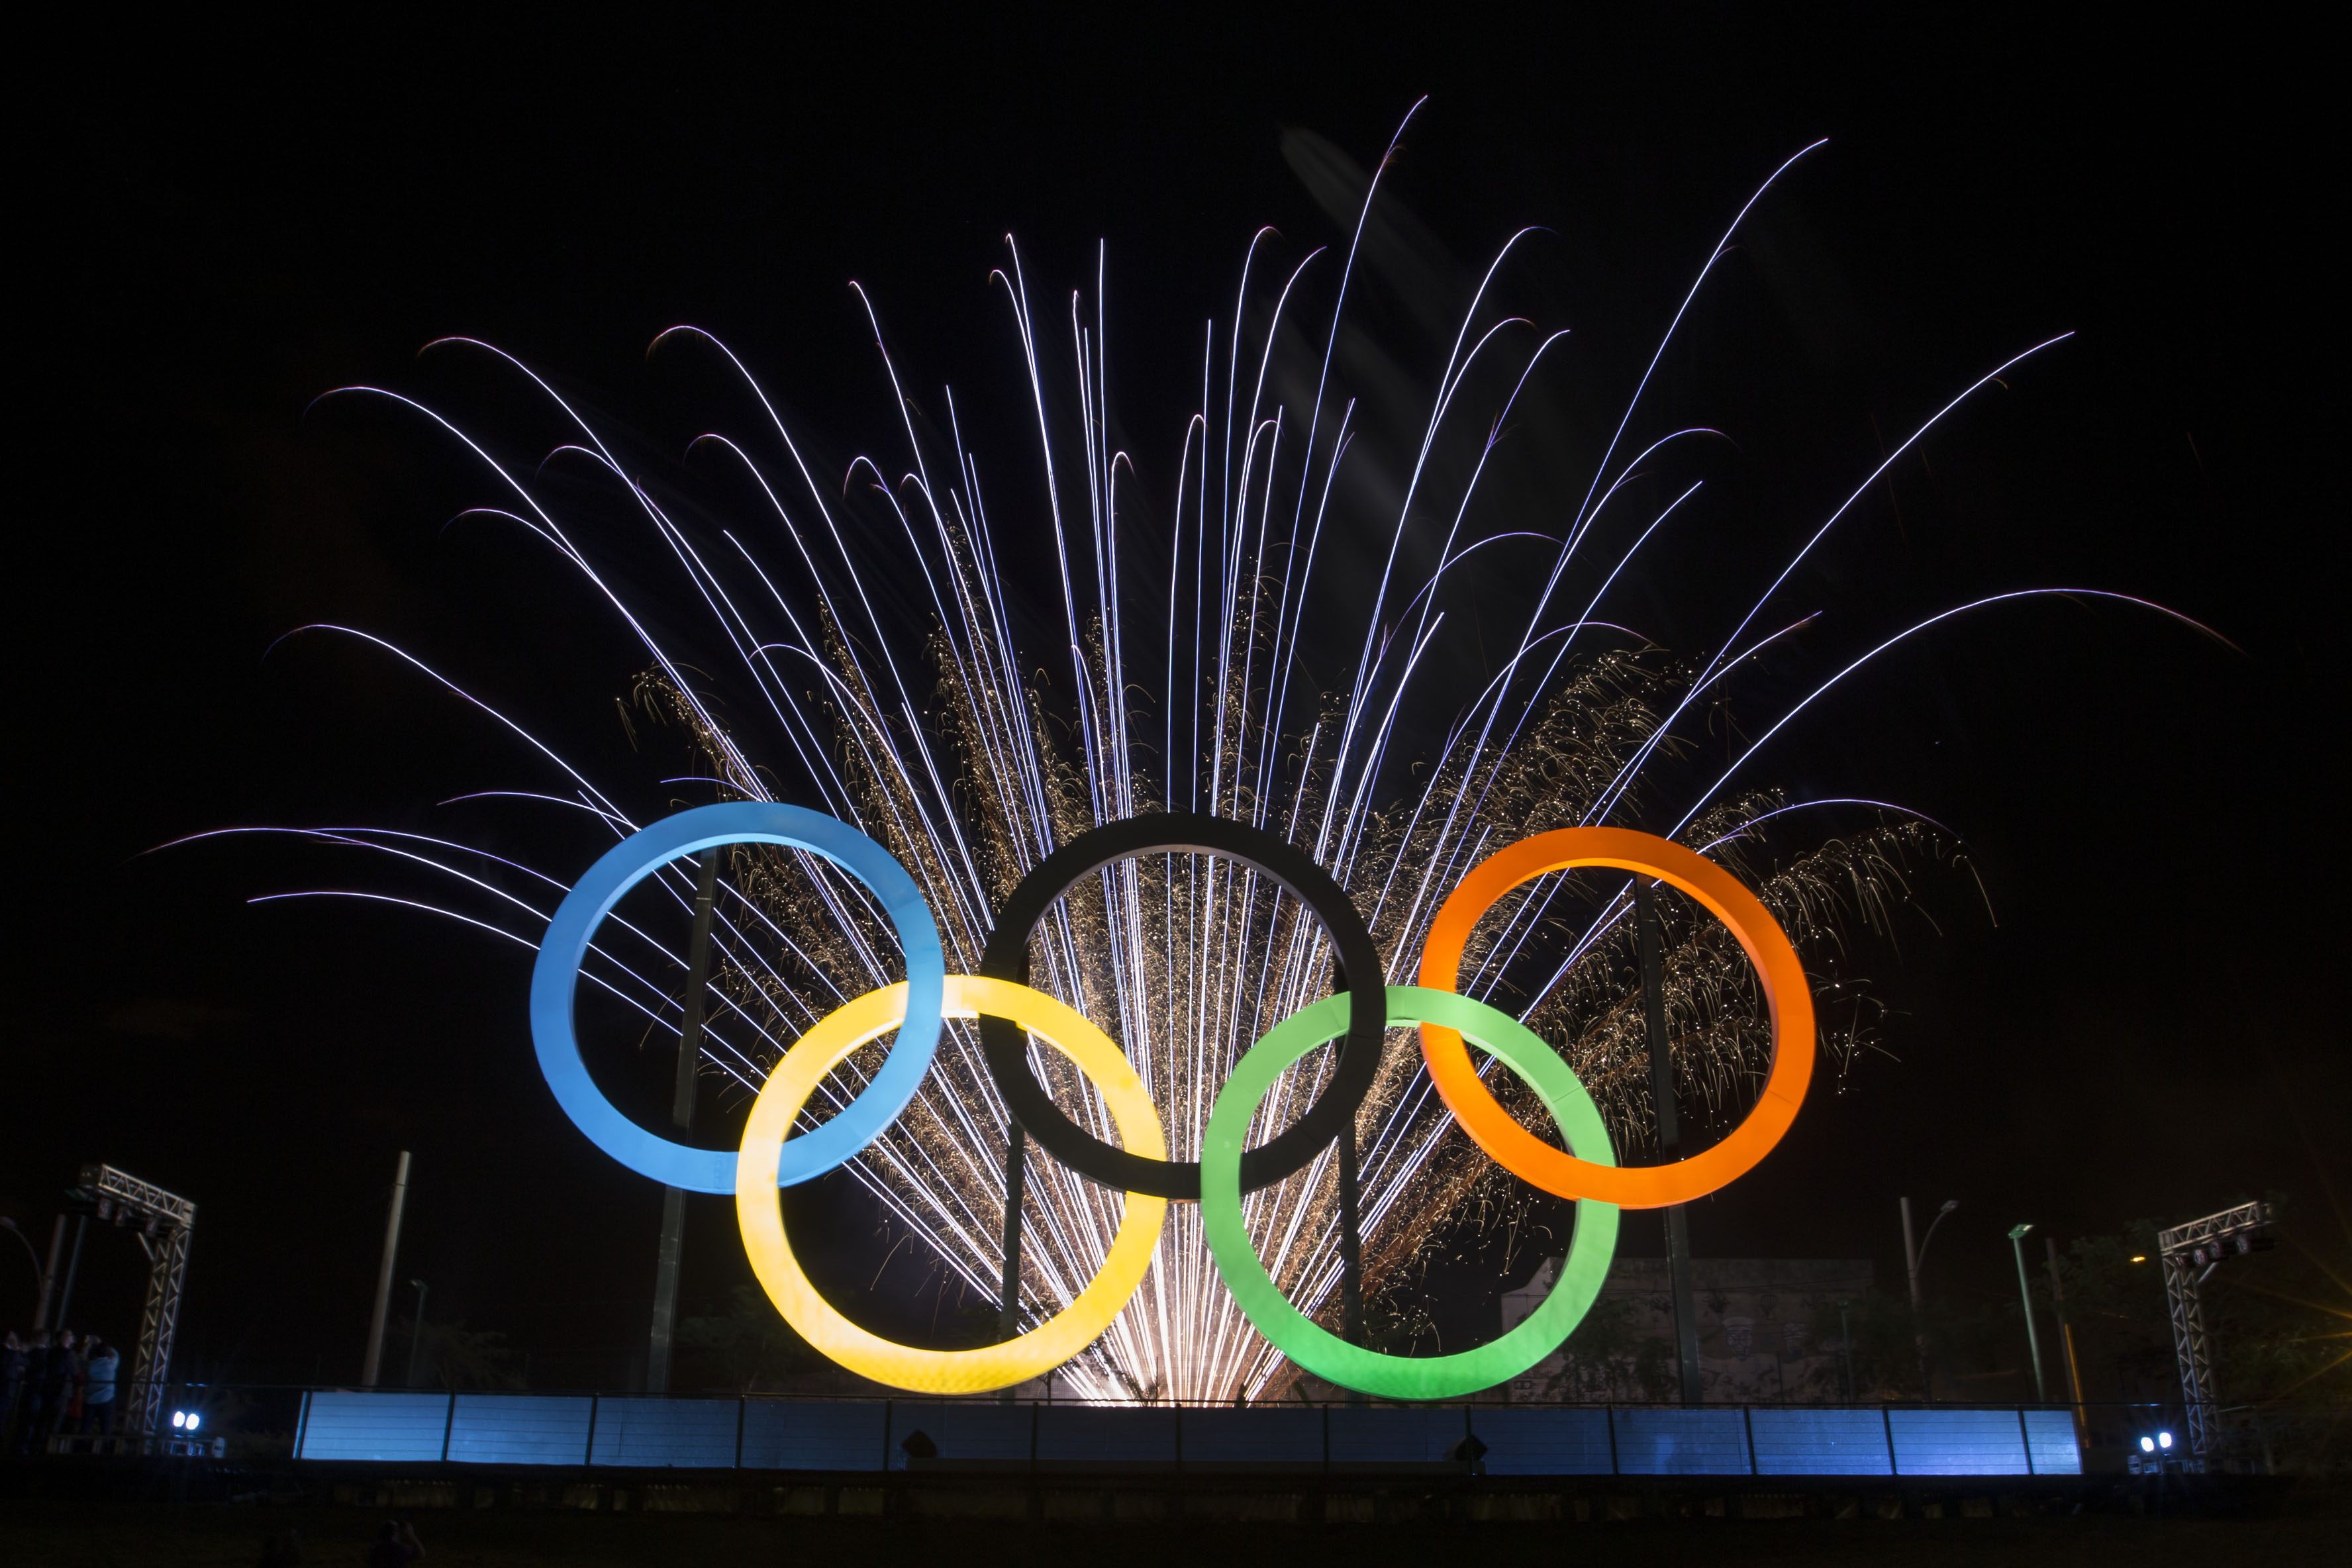 FILE - In this May 20, 2015 file photo, fireworks explode behind the Olympic rings during their inauguration ceremony at Madureira Park in Rio de Janeiro, Brazil. Some people in Brazil are trying to scalp tickets for the Rio de Janeiro Olympics, even befo